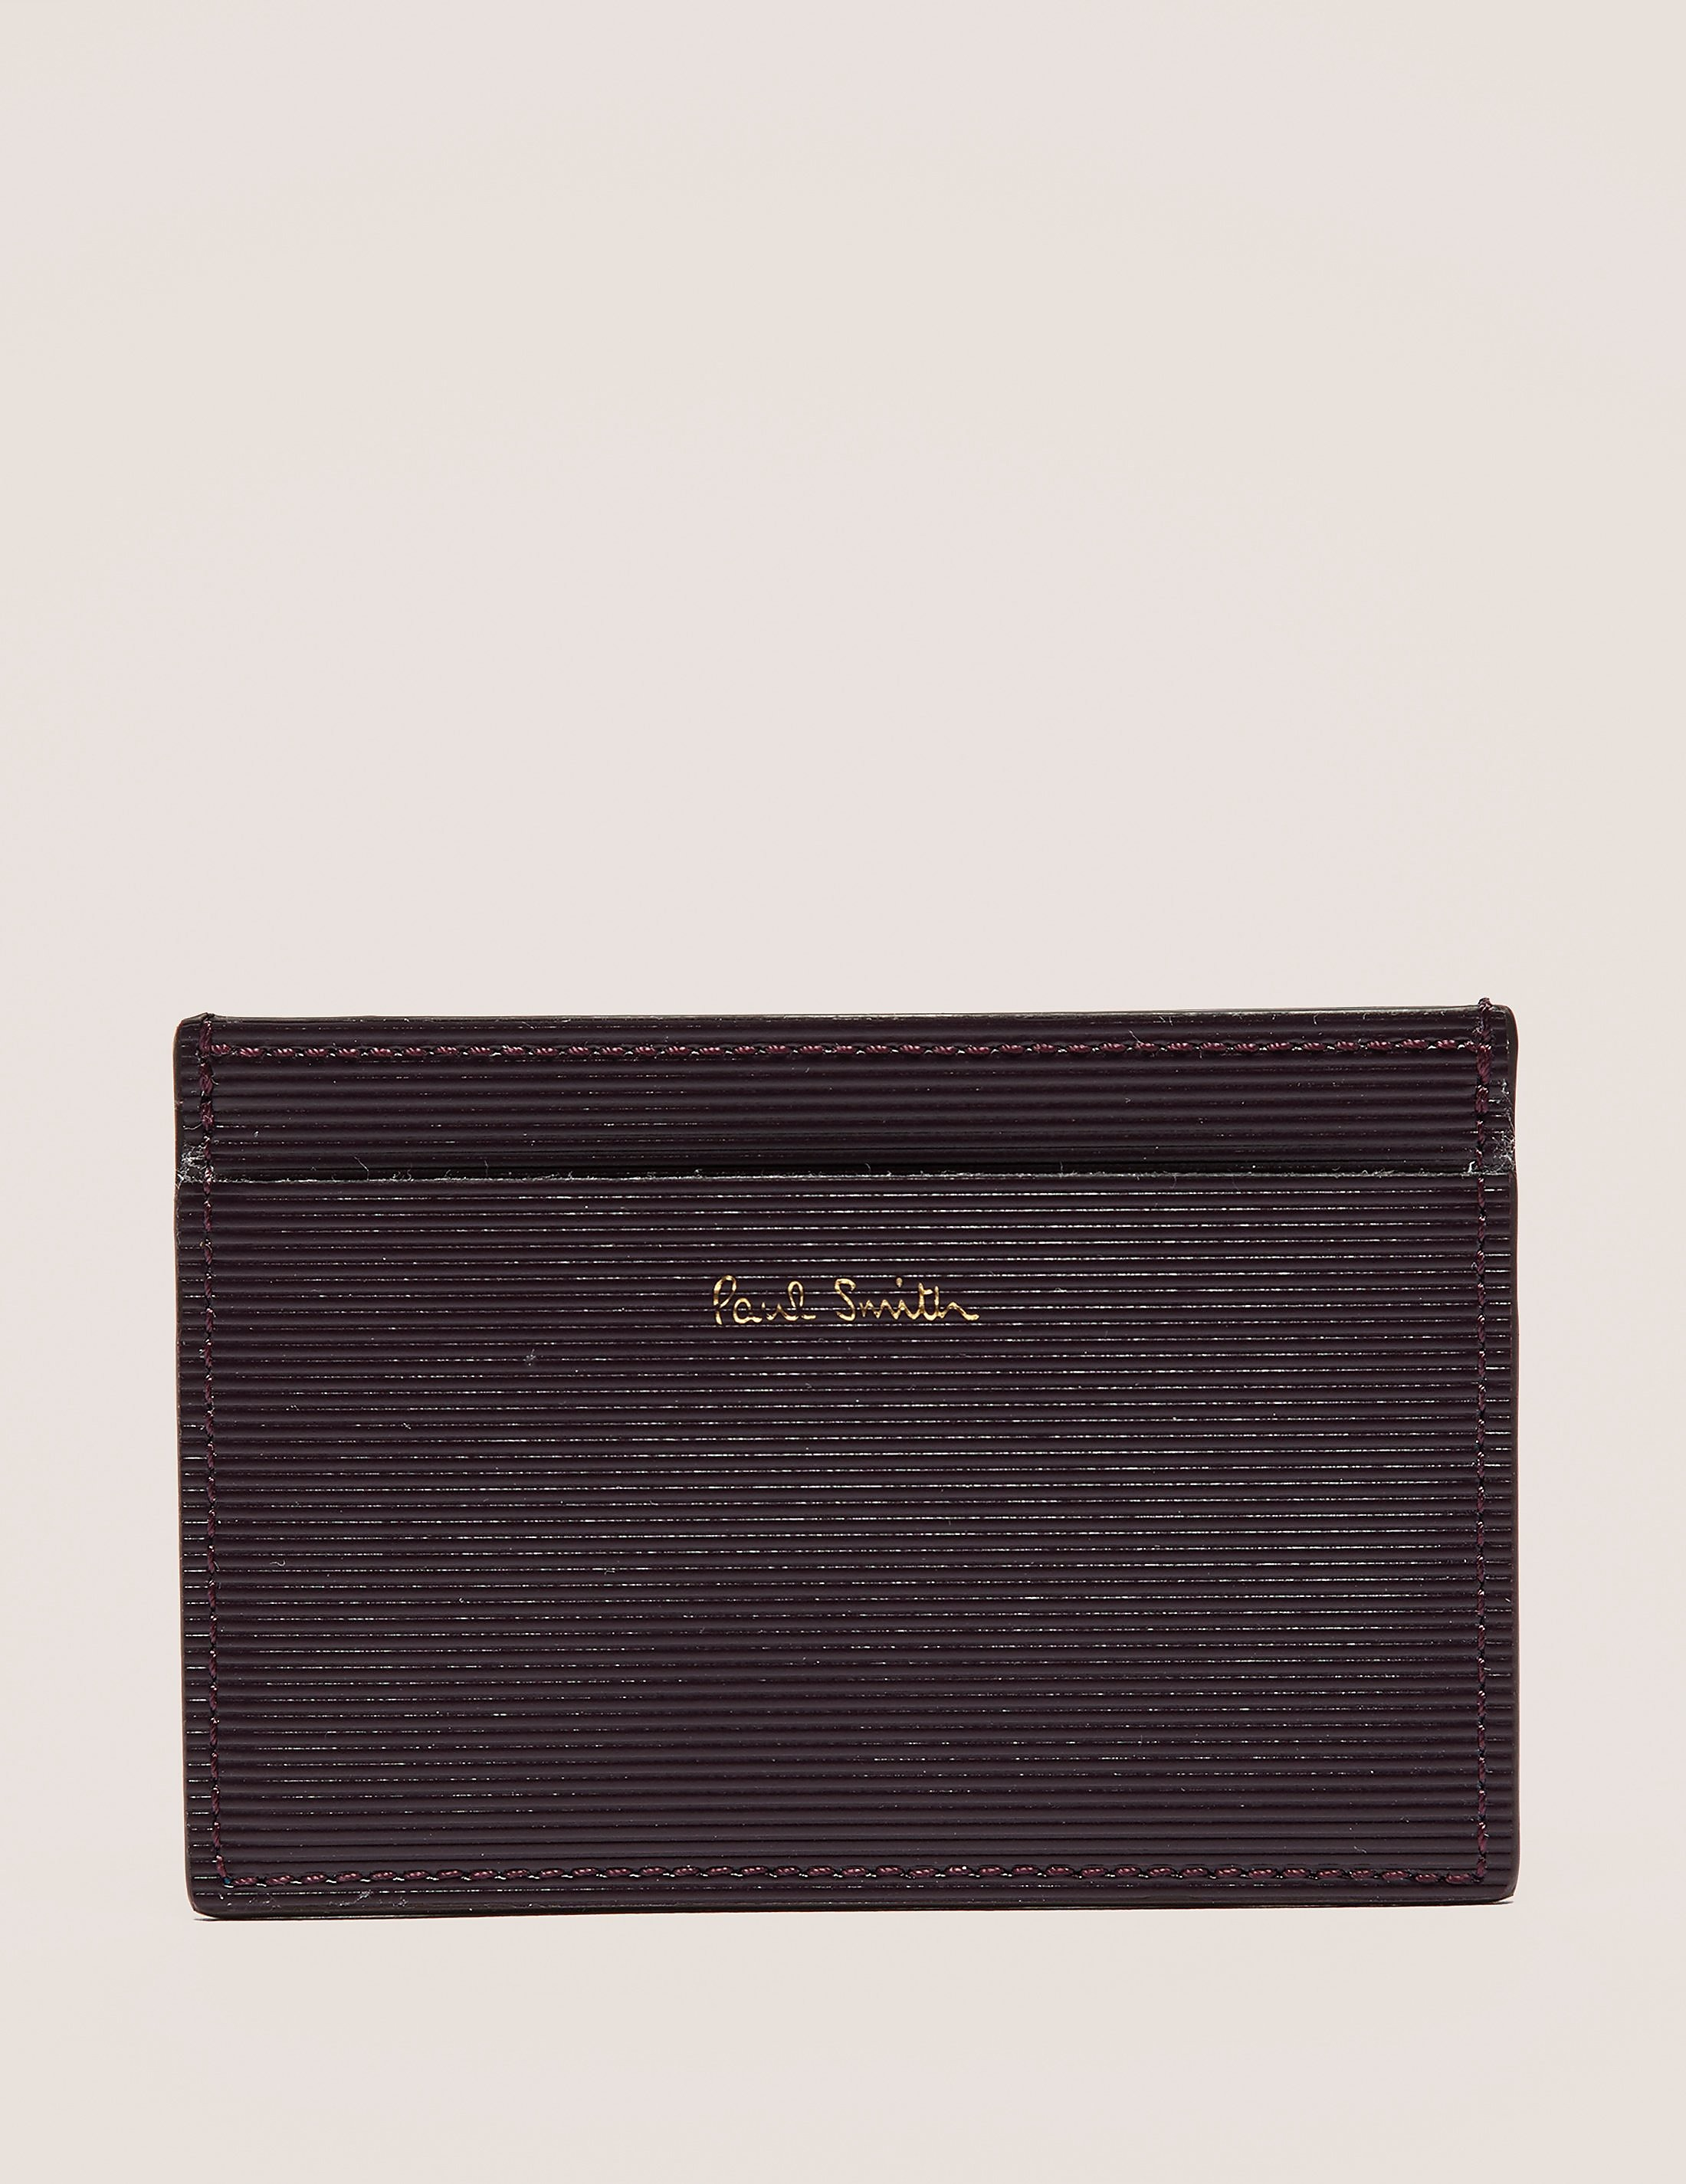 Paul Smith Stripe Embossed Credit Card Holder